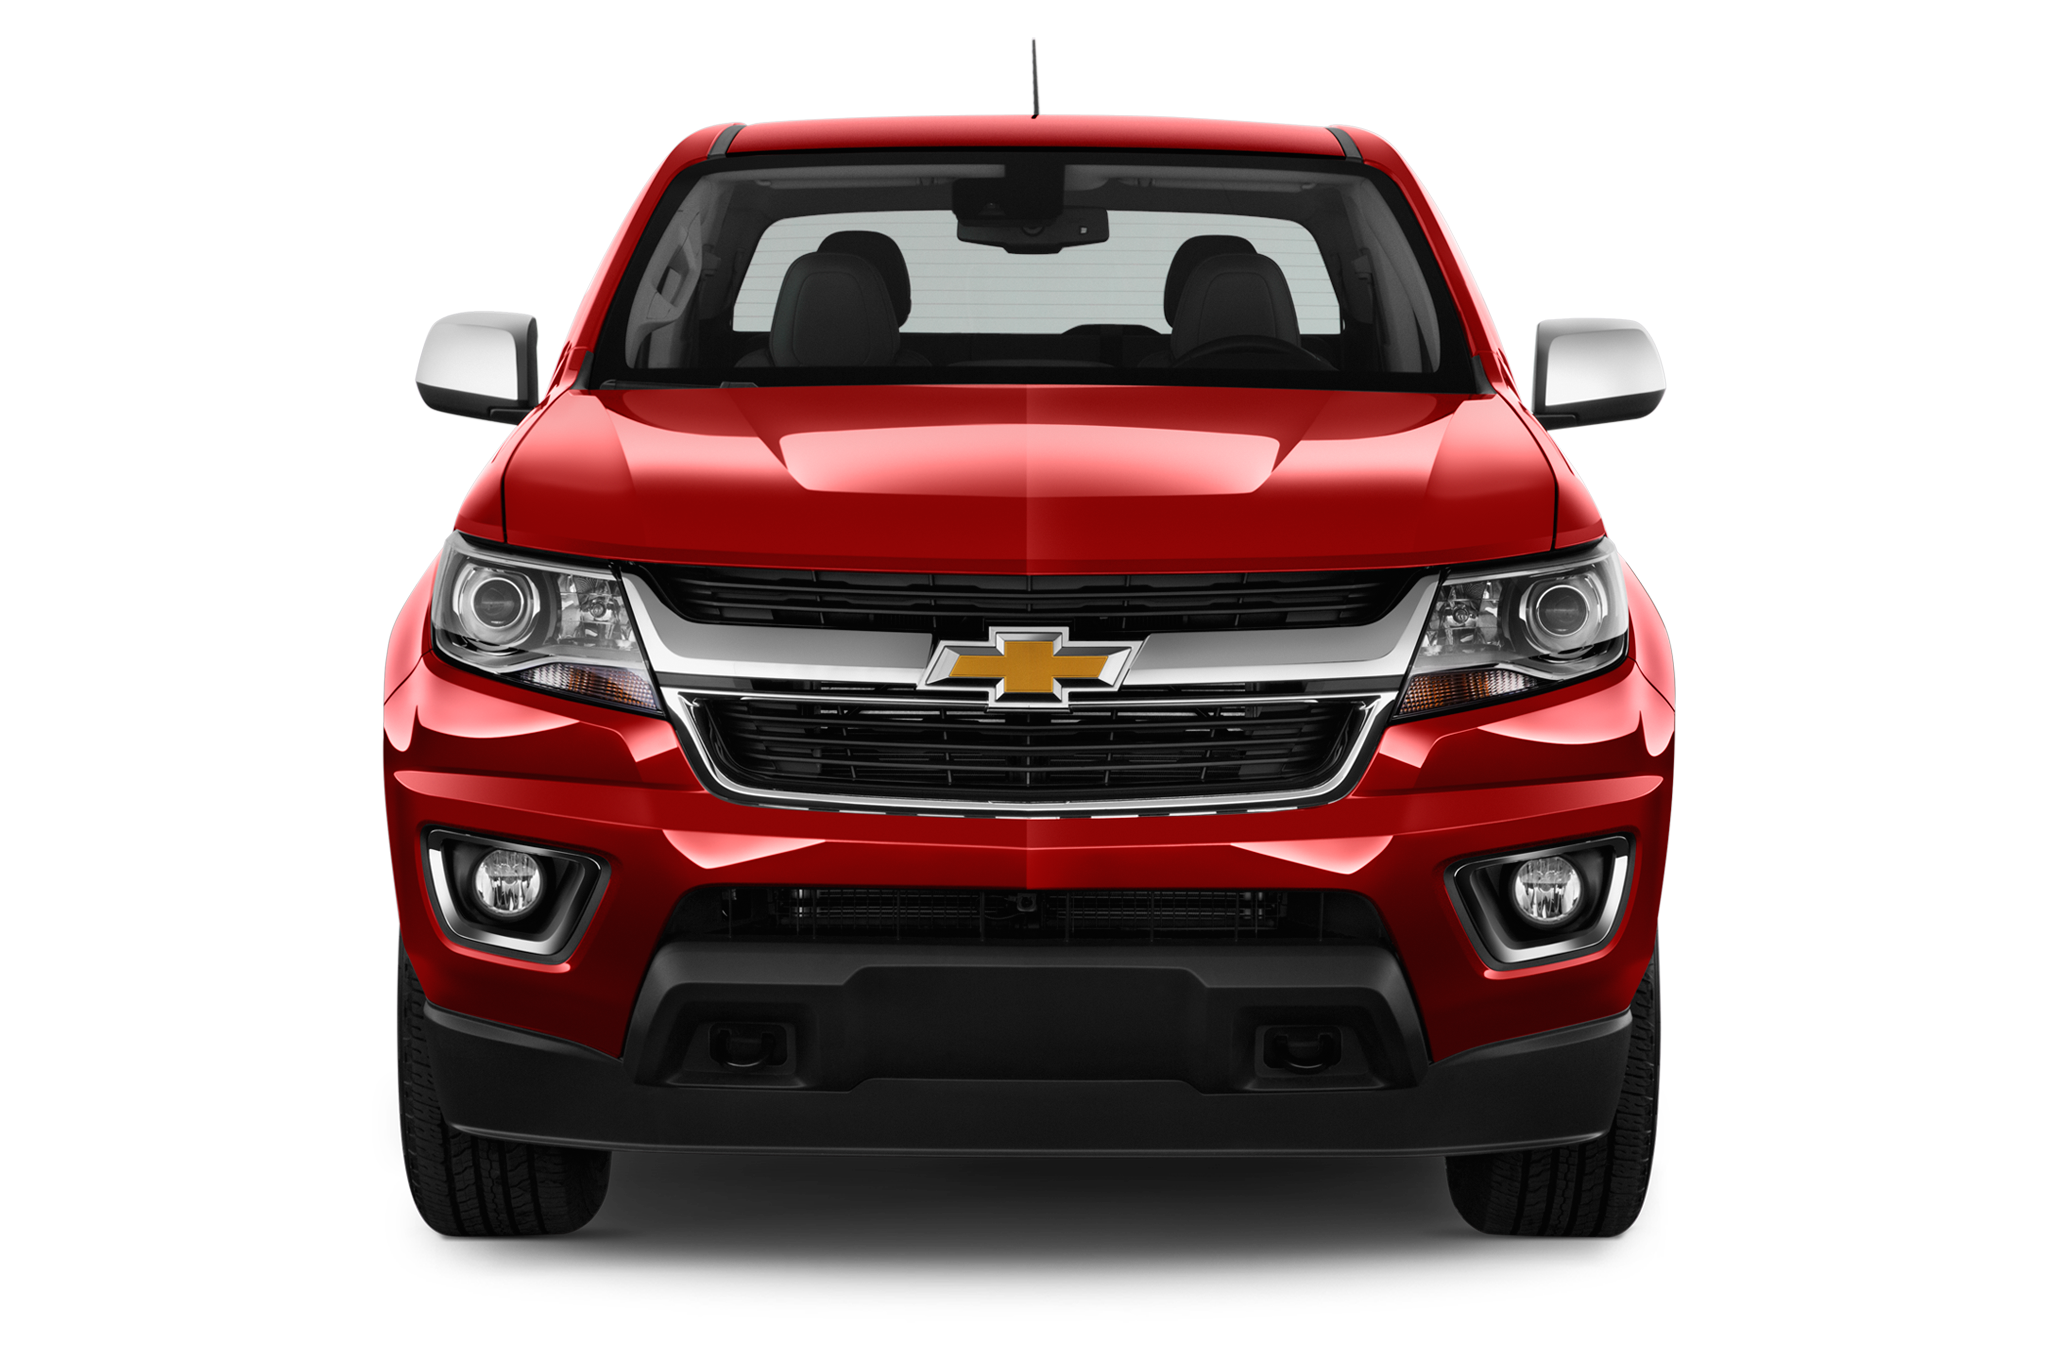 73 The 2020 Chevy Colorado Going Launched Soon Spy Shoot for 2020 Chevy Colorado Going Launched Soon